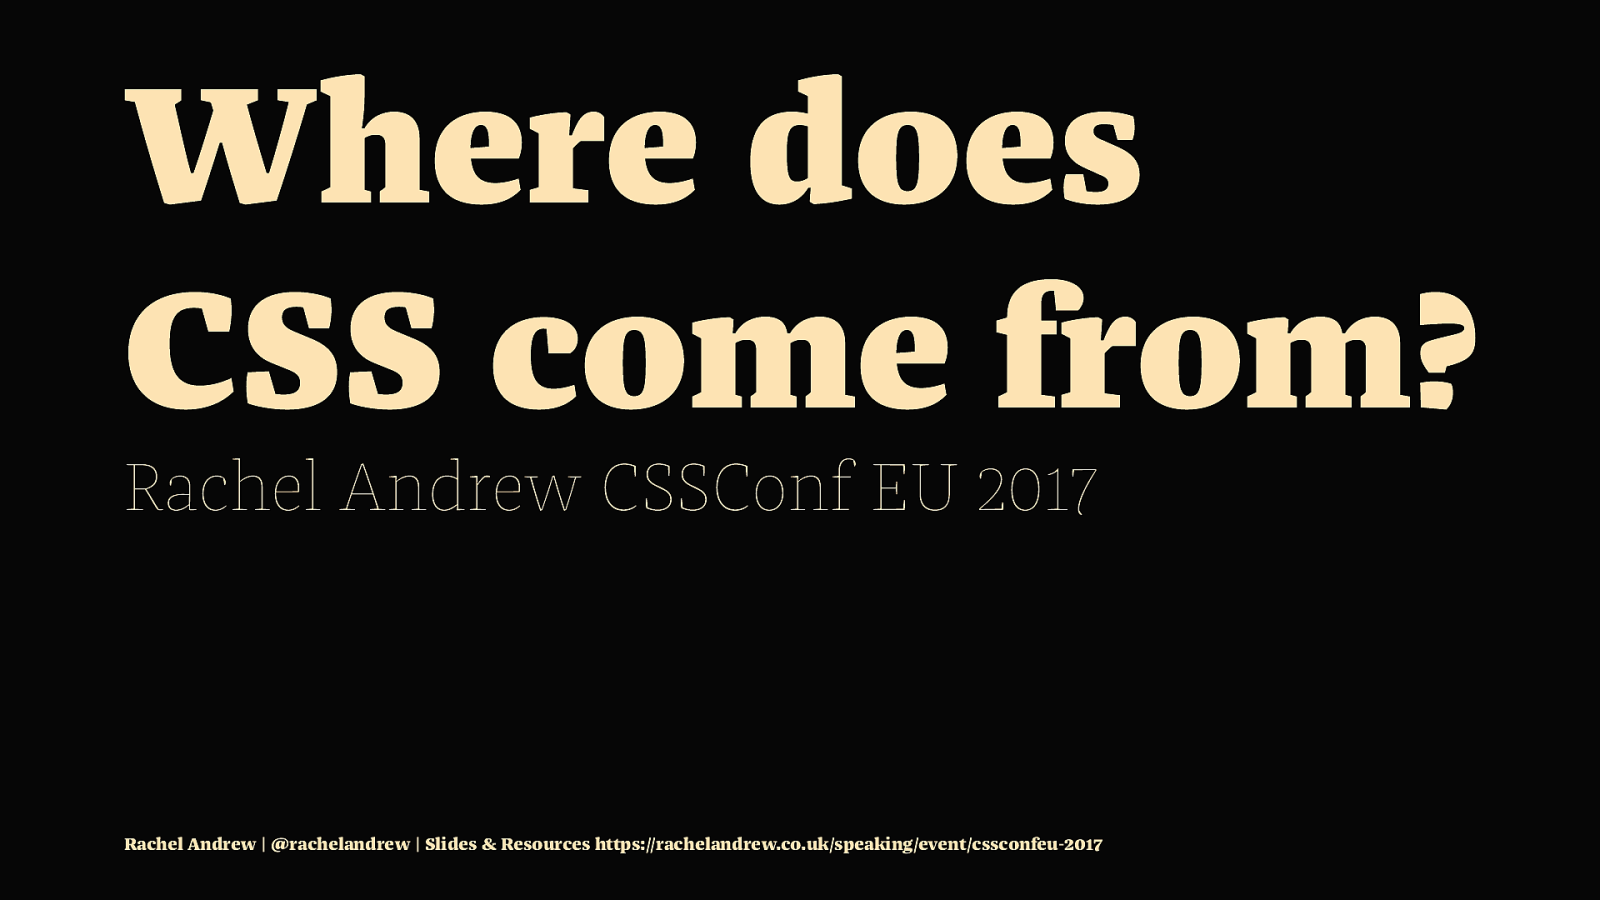 Where Does CSS Come From?